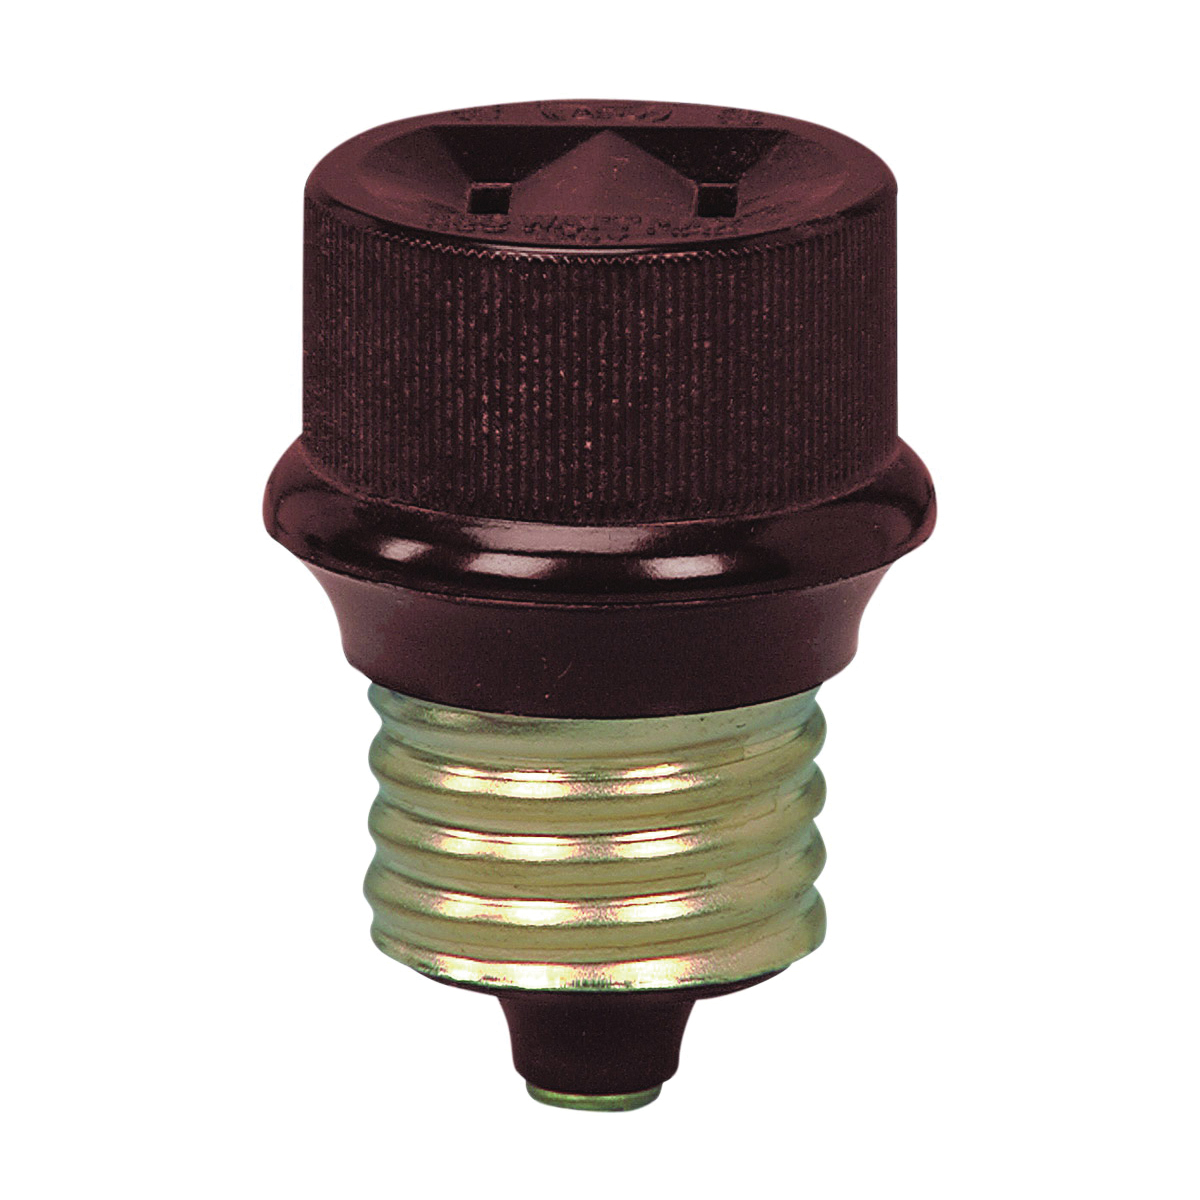 Picture of Eaton Cooper Wiring 808-BOX Socket Adapter, 660 W, 1-Outlet, Brown